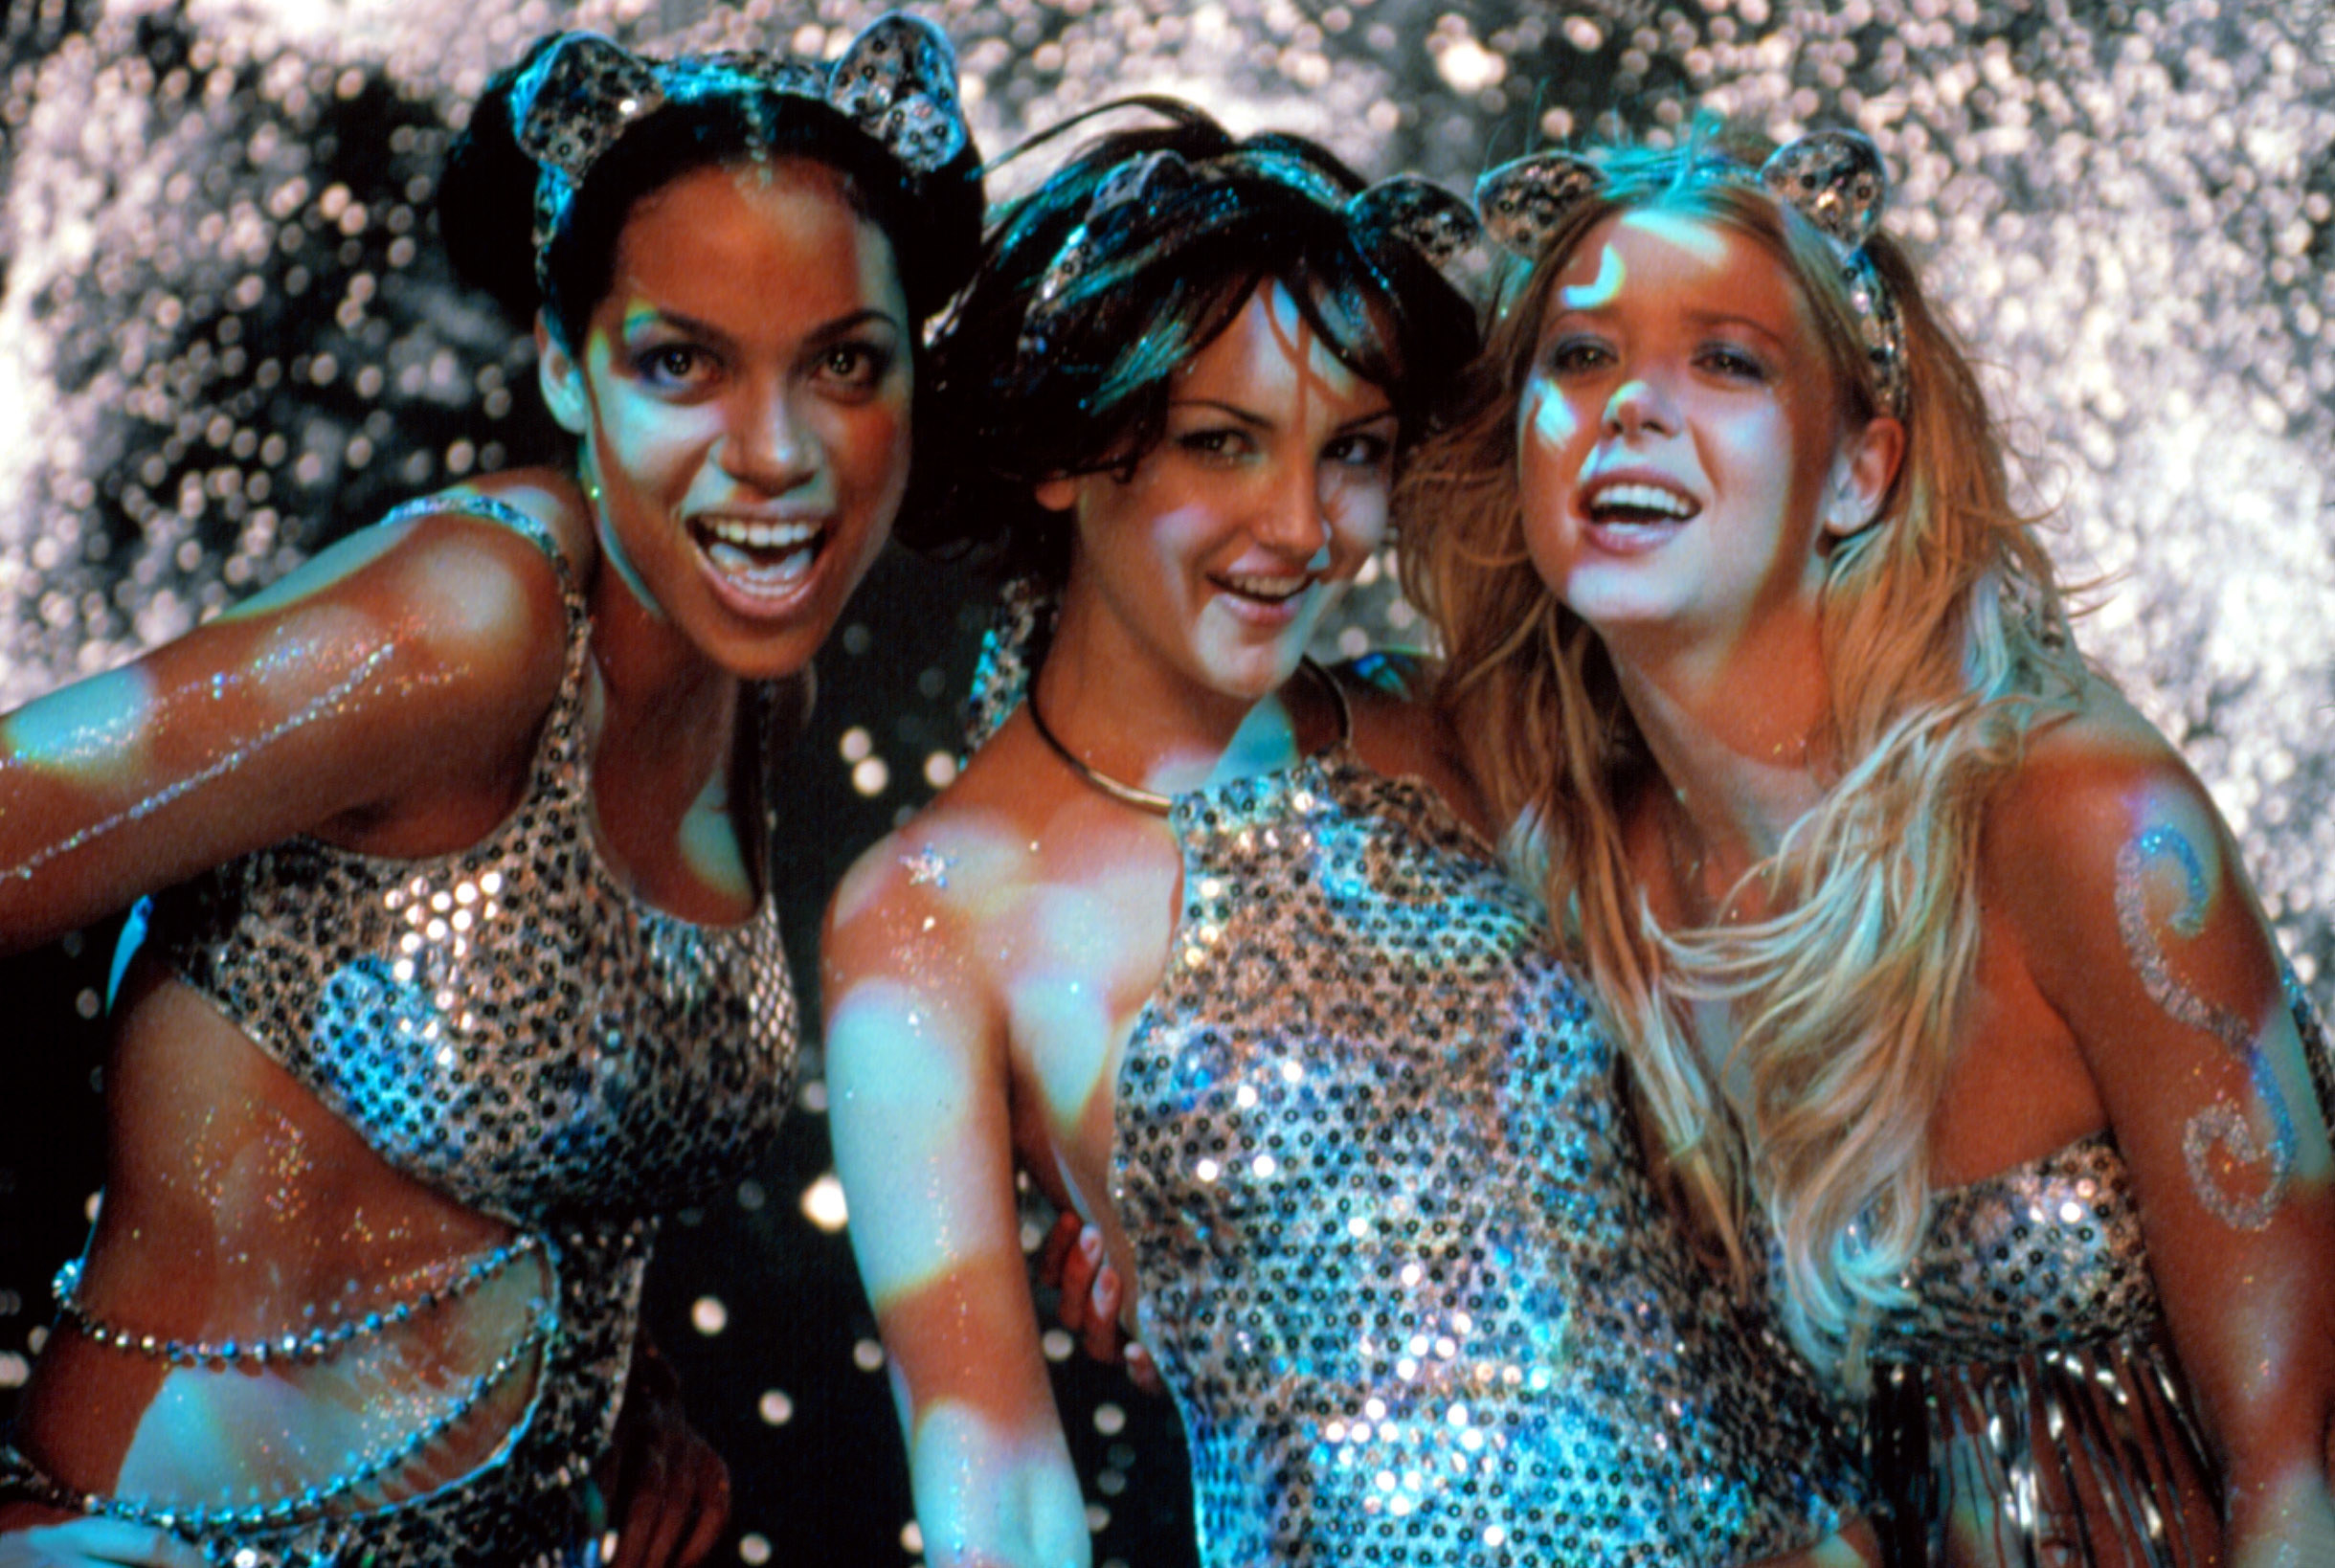 Rosario Dawson,Rachael Leigh Cook, and Tara Reid smile while wearing cat ears as Valerie, Josie, and Melody